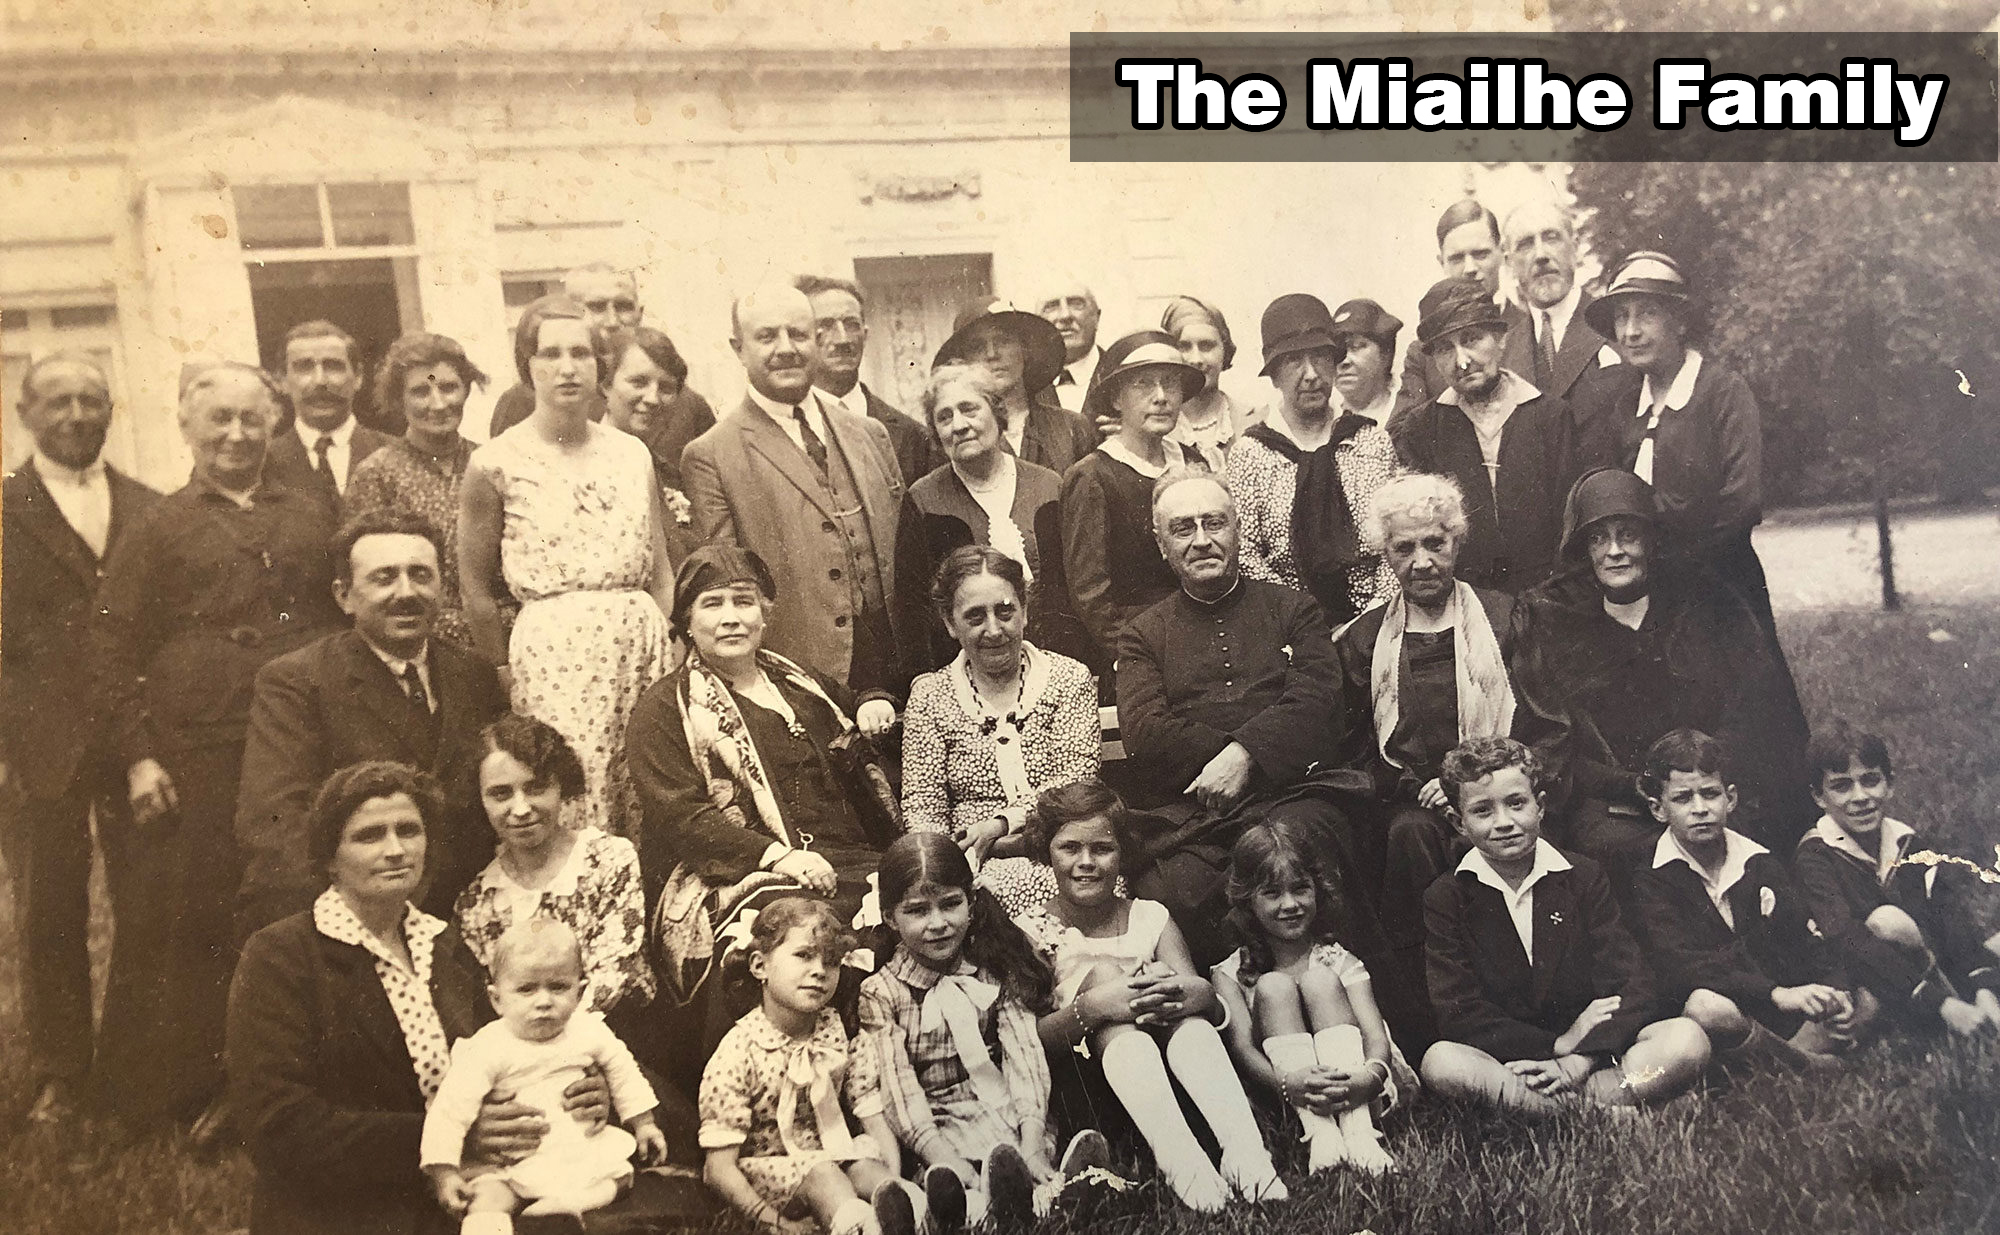 The Miailhe Family|Wine Couple 醇酒伴侶